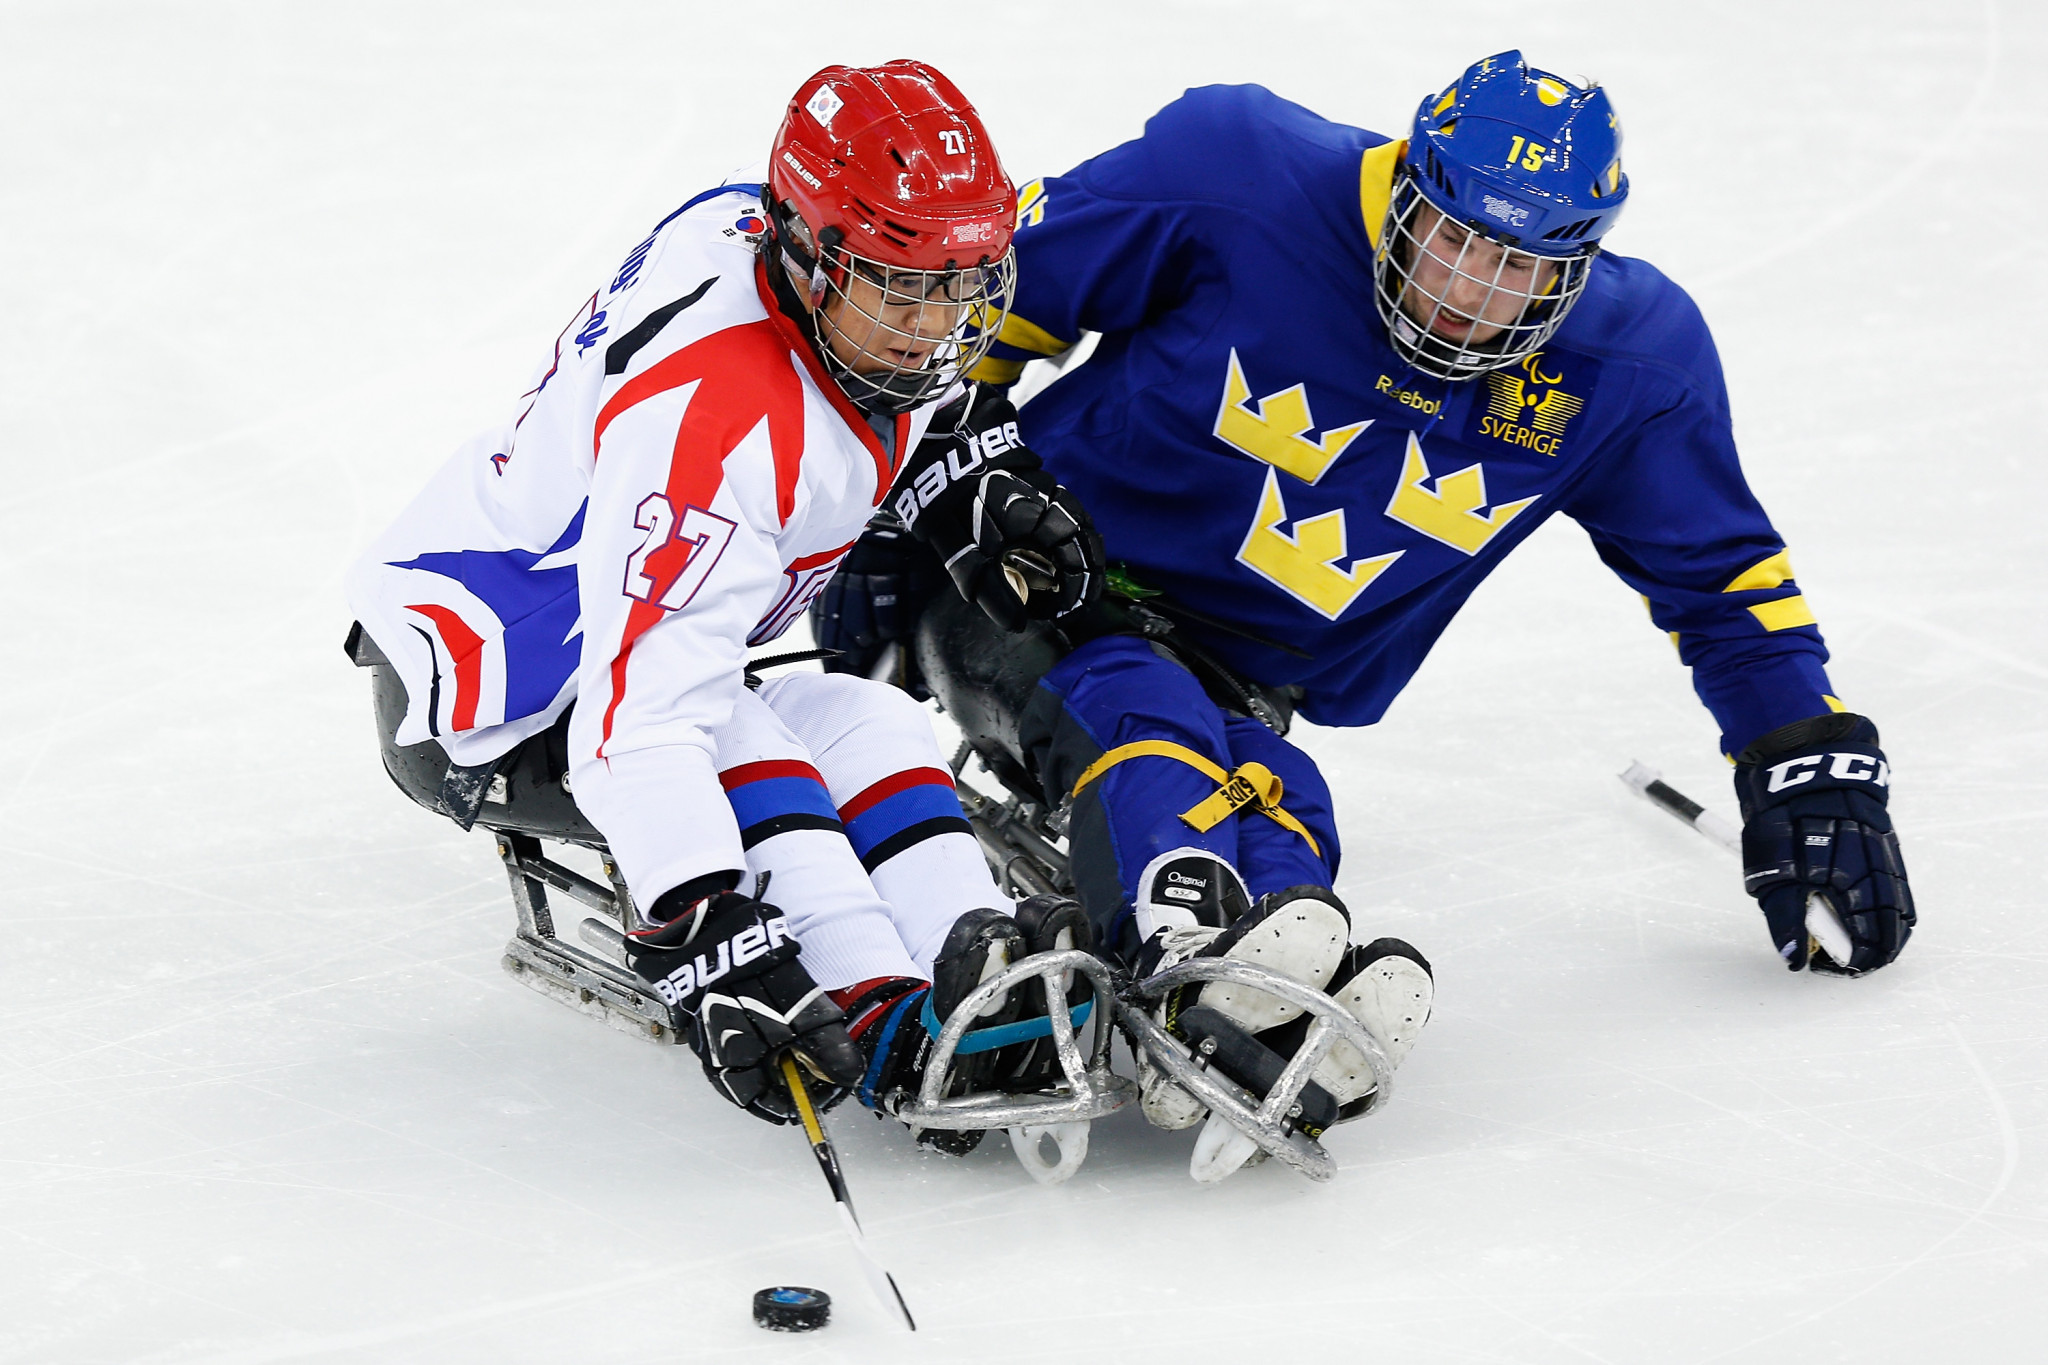 Hosts Sweden victorious on opening day of World Para Ice Hockey Championships B-Pool